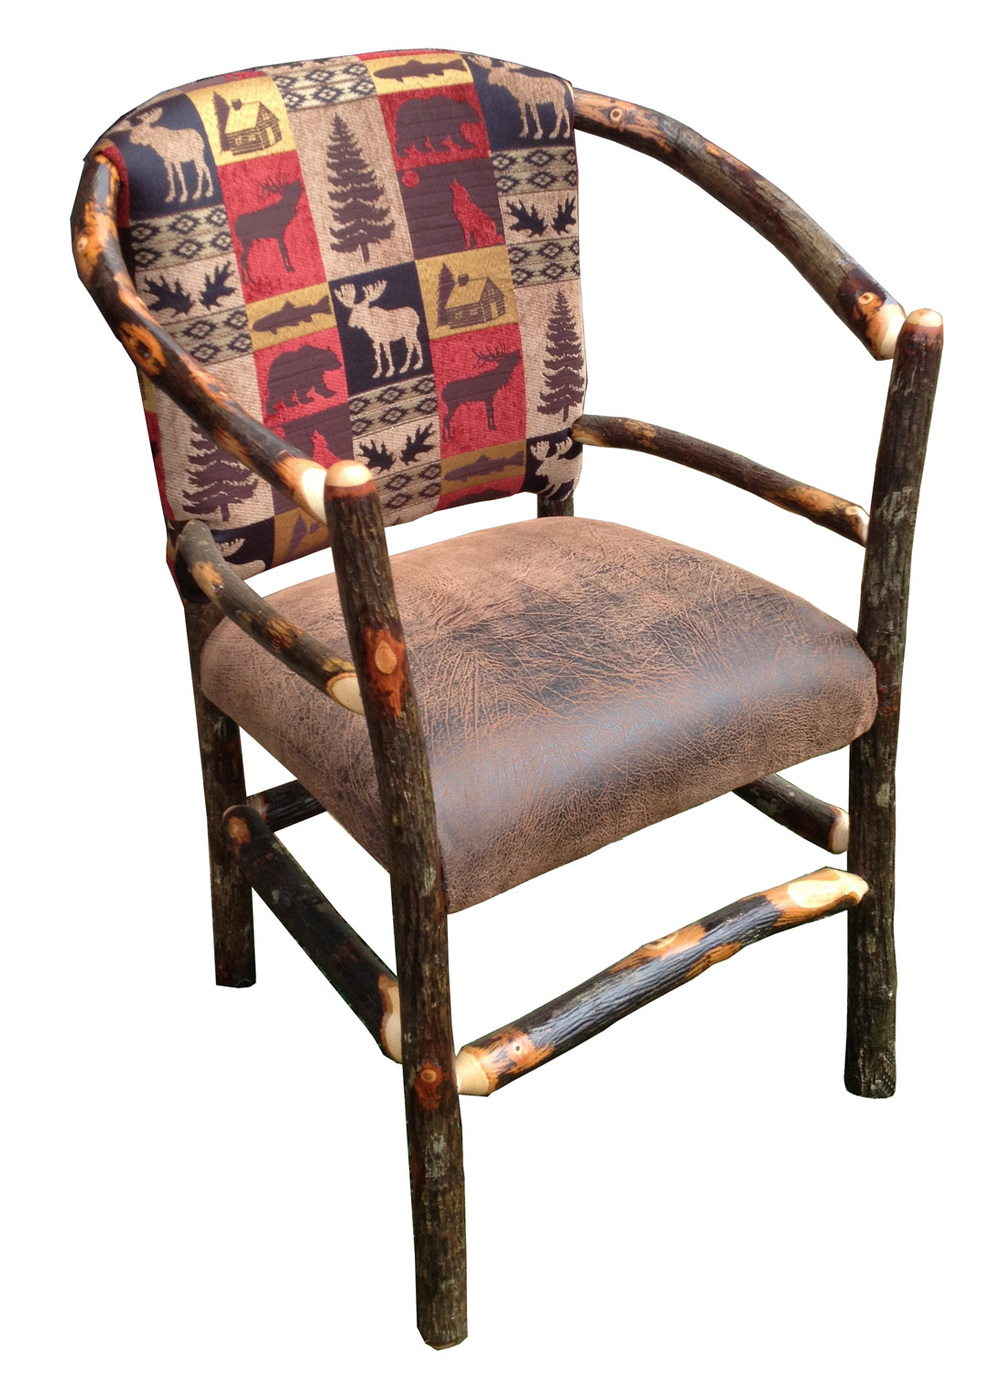 rustic-hickory-hoop-dining-chair-or-side-chair-with-a-wildlife-fabric-20.jpg